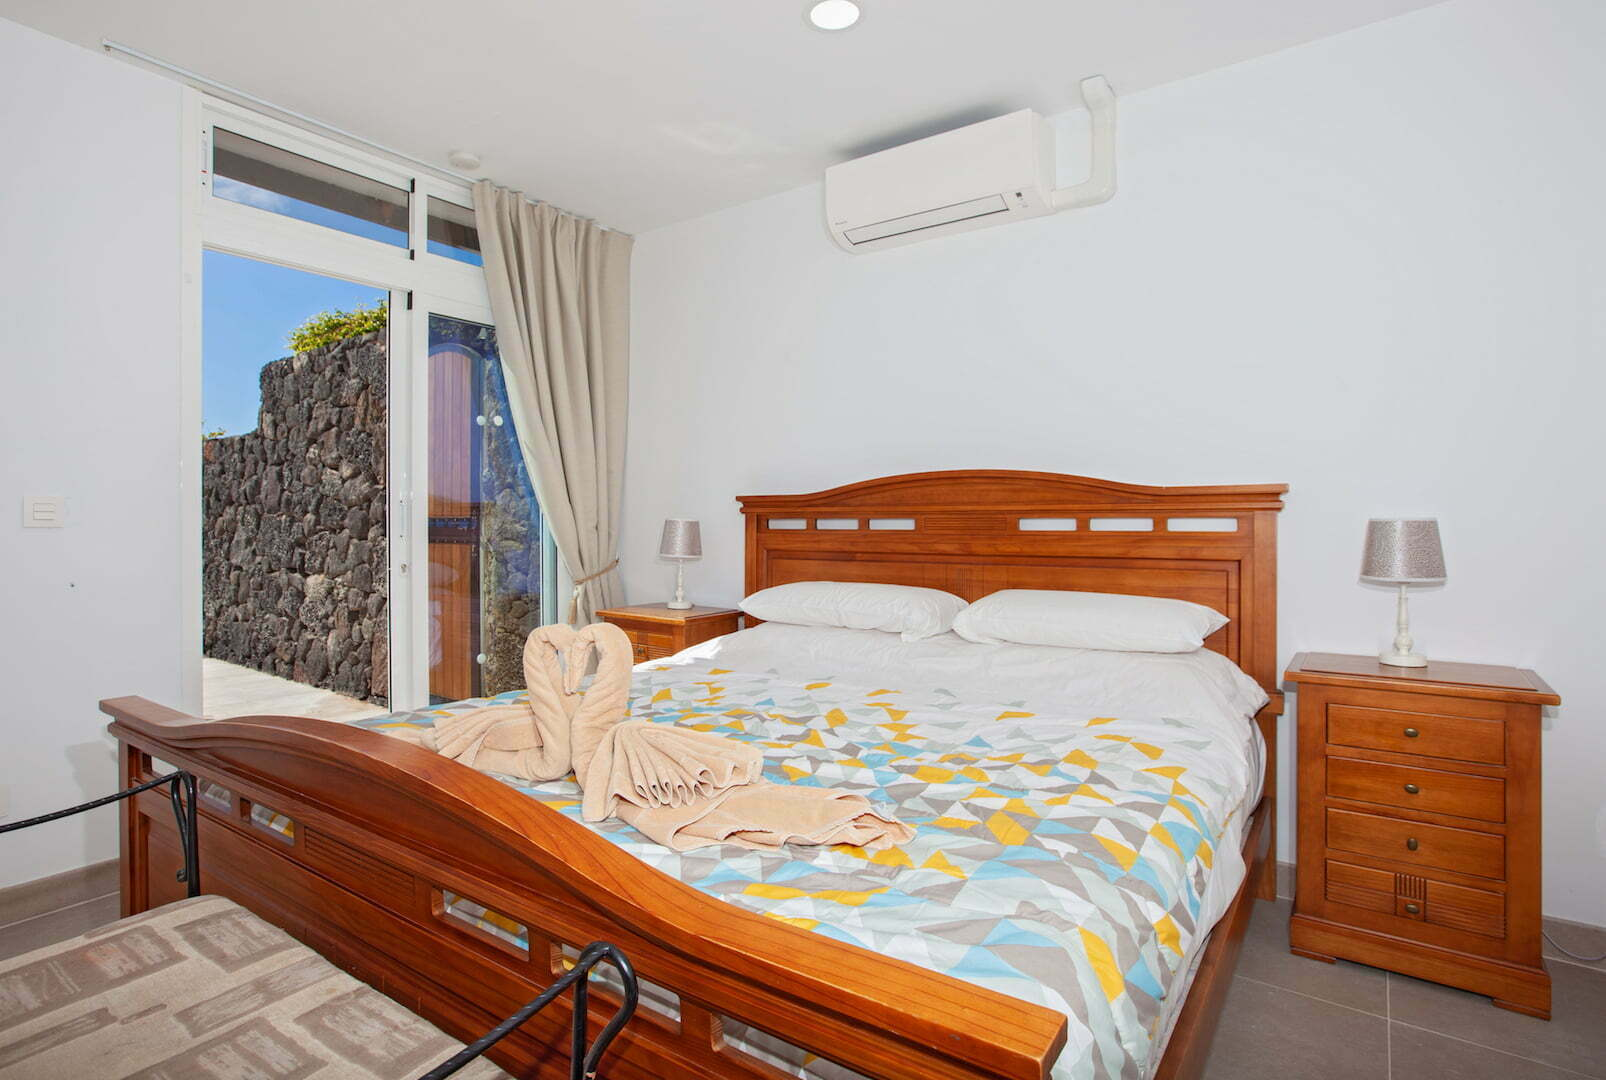 Casa Cristal - Double Bedroom - Super King Sized Bed & Shared Bathroom